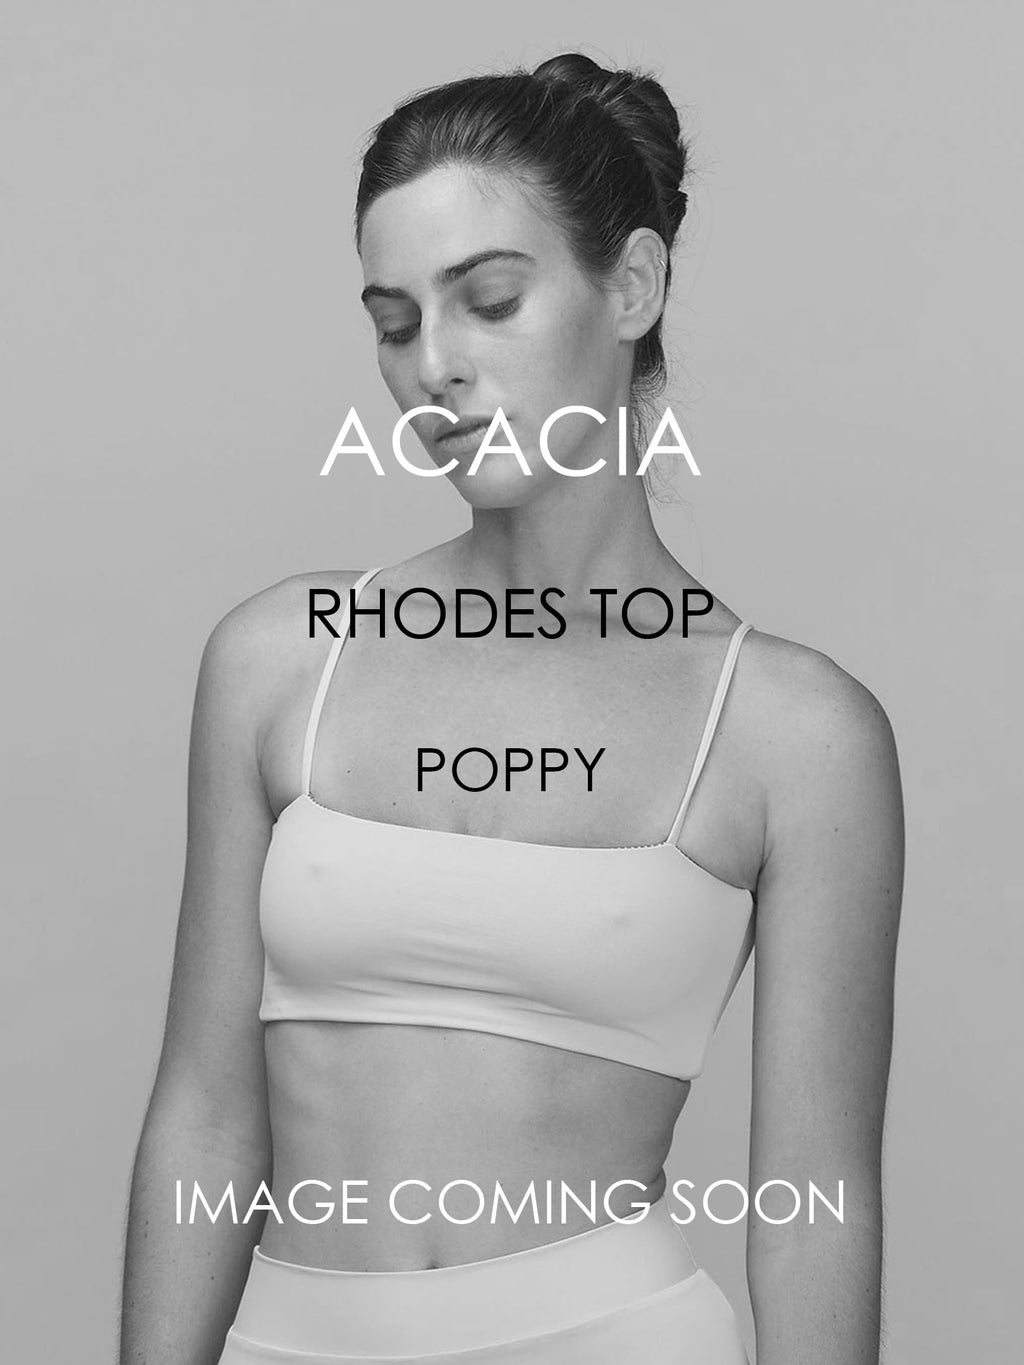 ACACIA Rhodes Top | Poppy